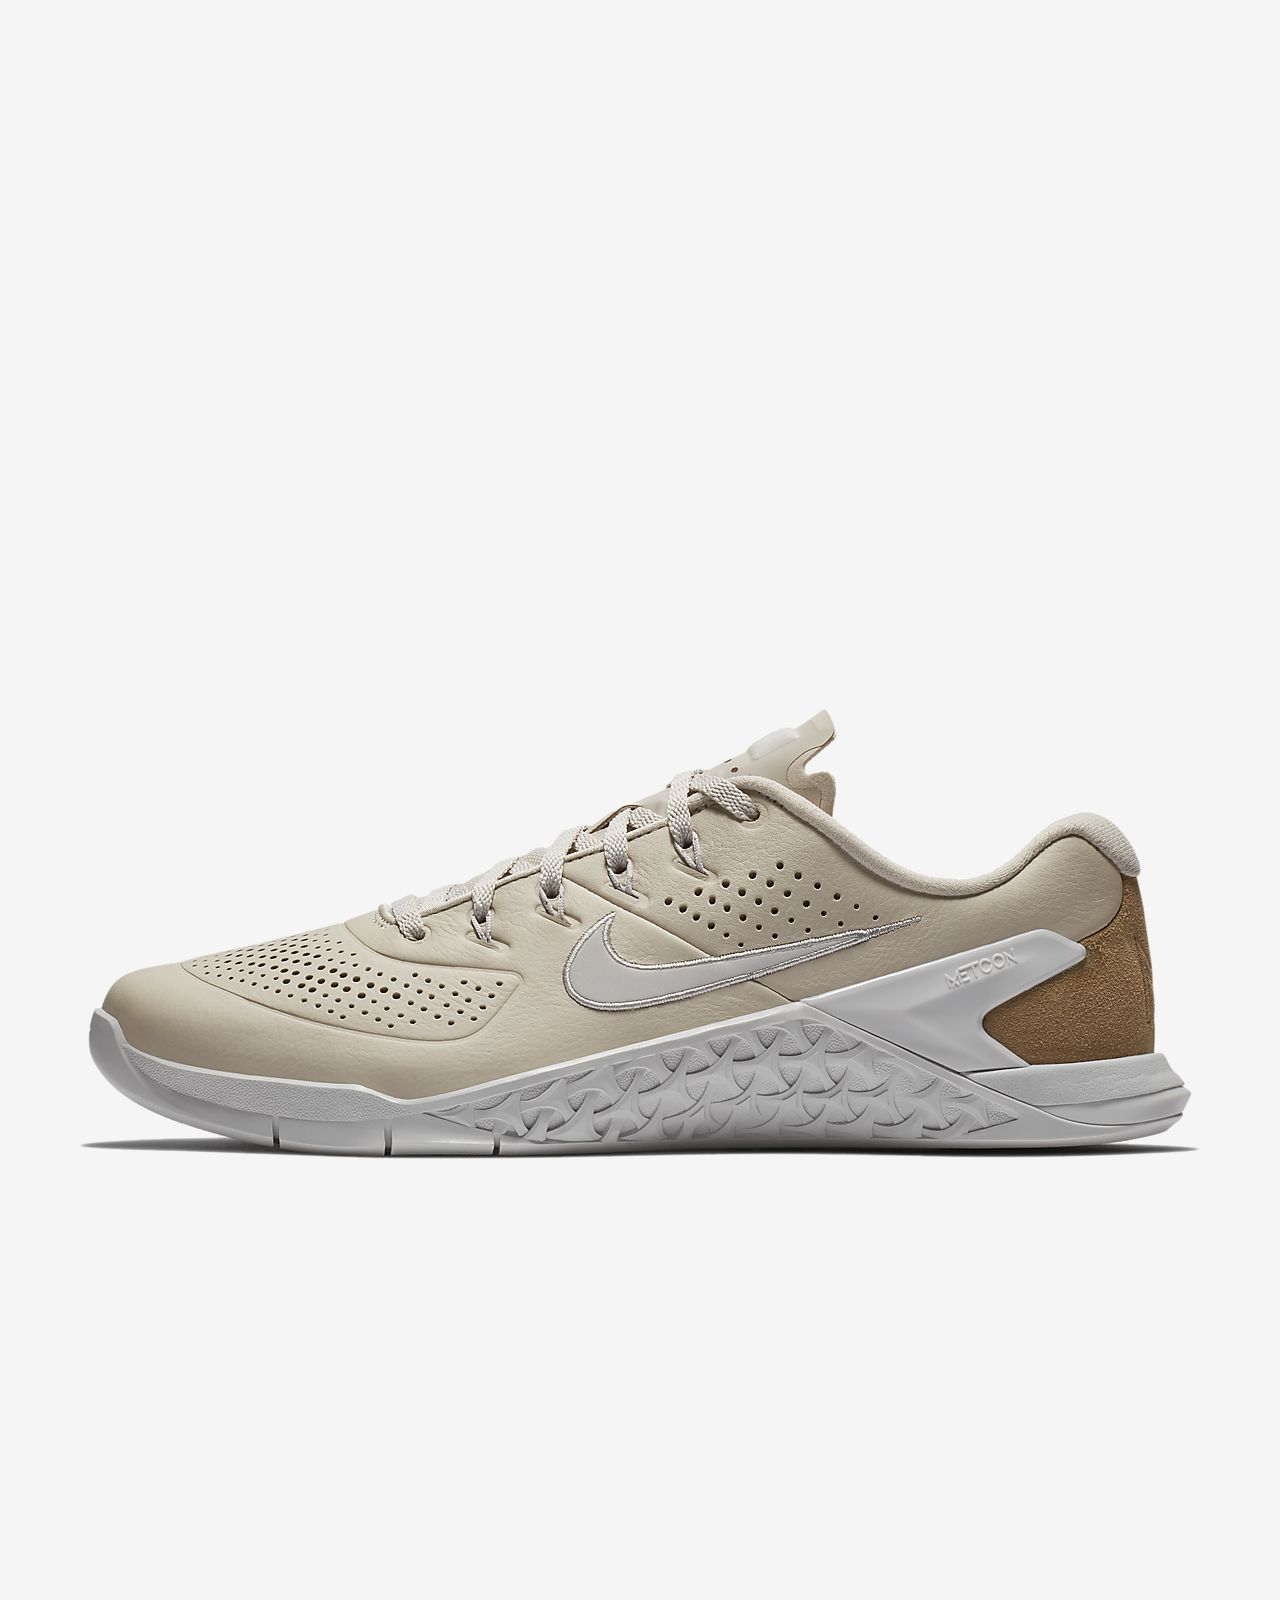 71c741fd830ef5 ... 50% off nike metcon 4 leather mens cross training weightlifting shoe  d88ed 97bae